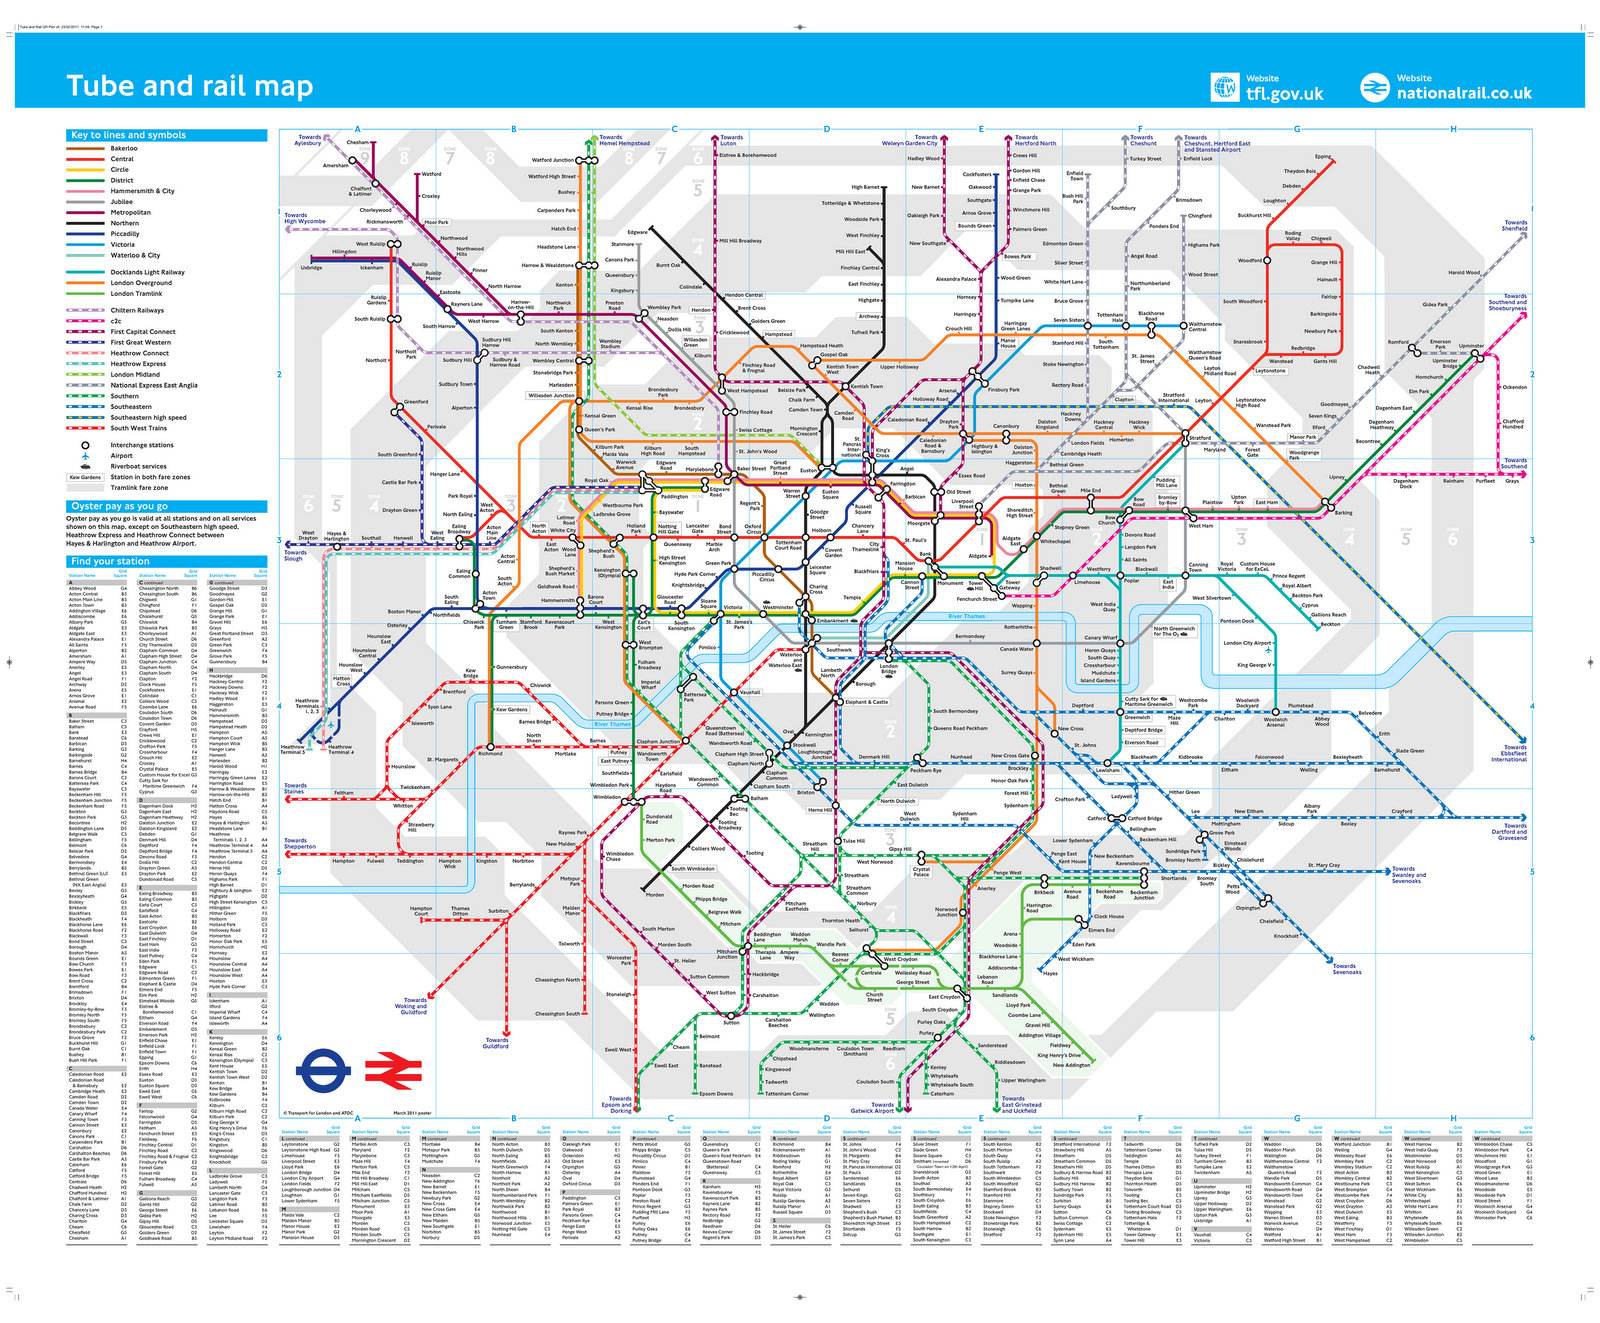 OEPs To Be Scrapped and a New Combined TubeRail Map London – London Travel Zone Map